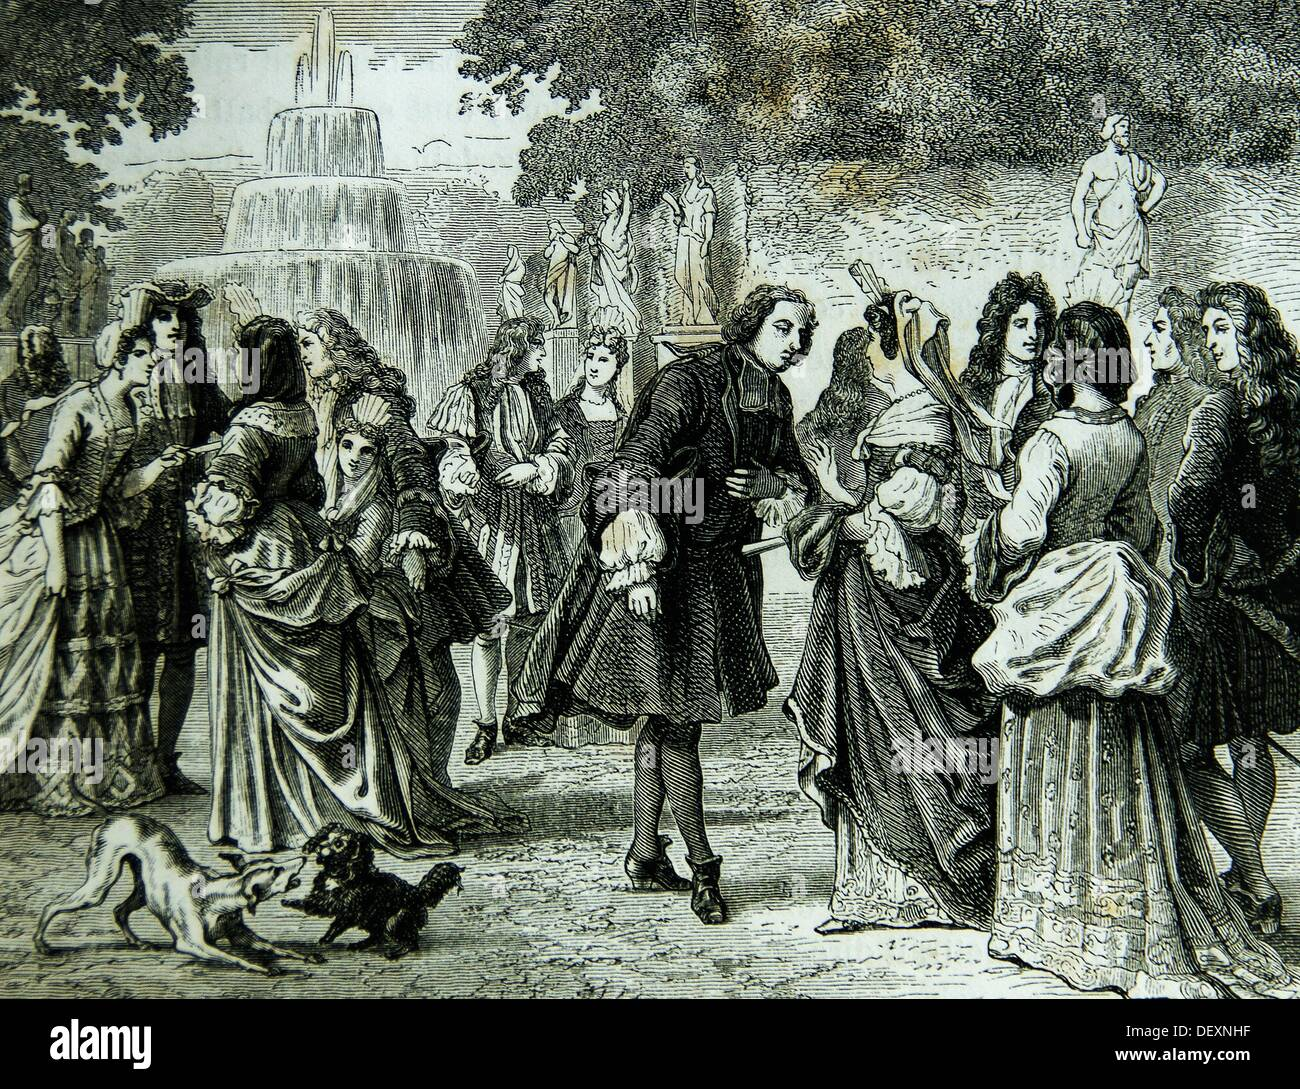 France, History, dressing way around 1700 - Stock Image